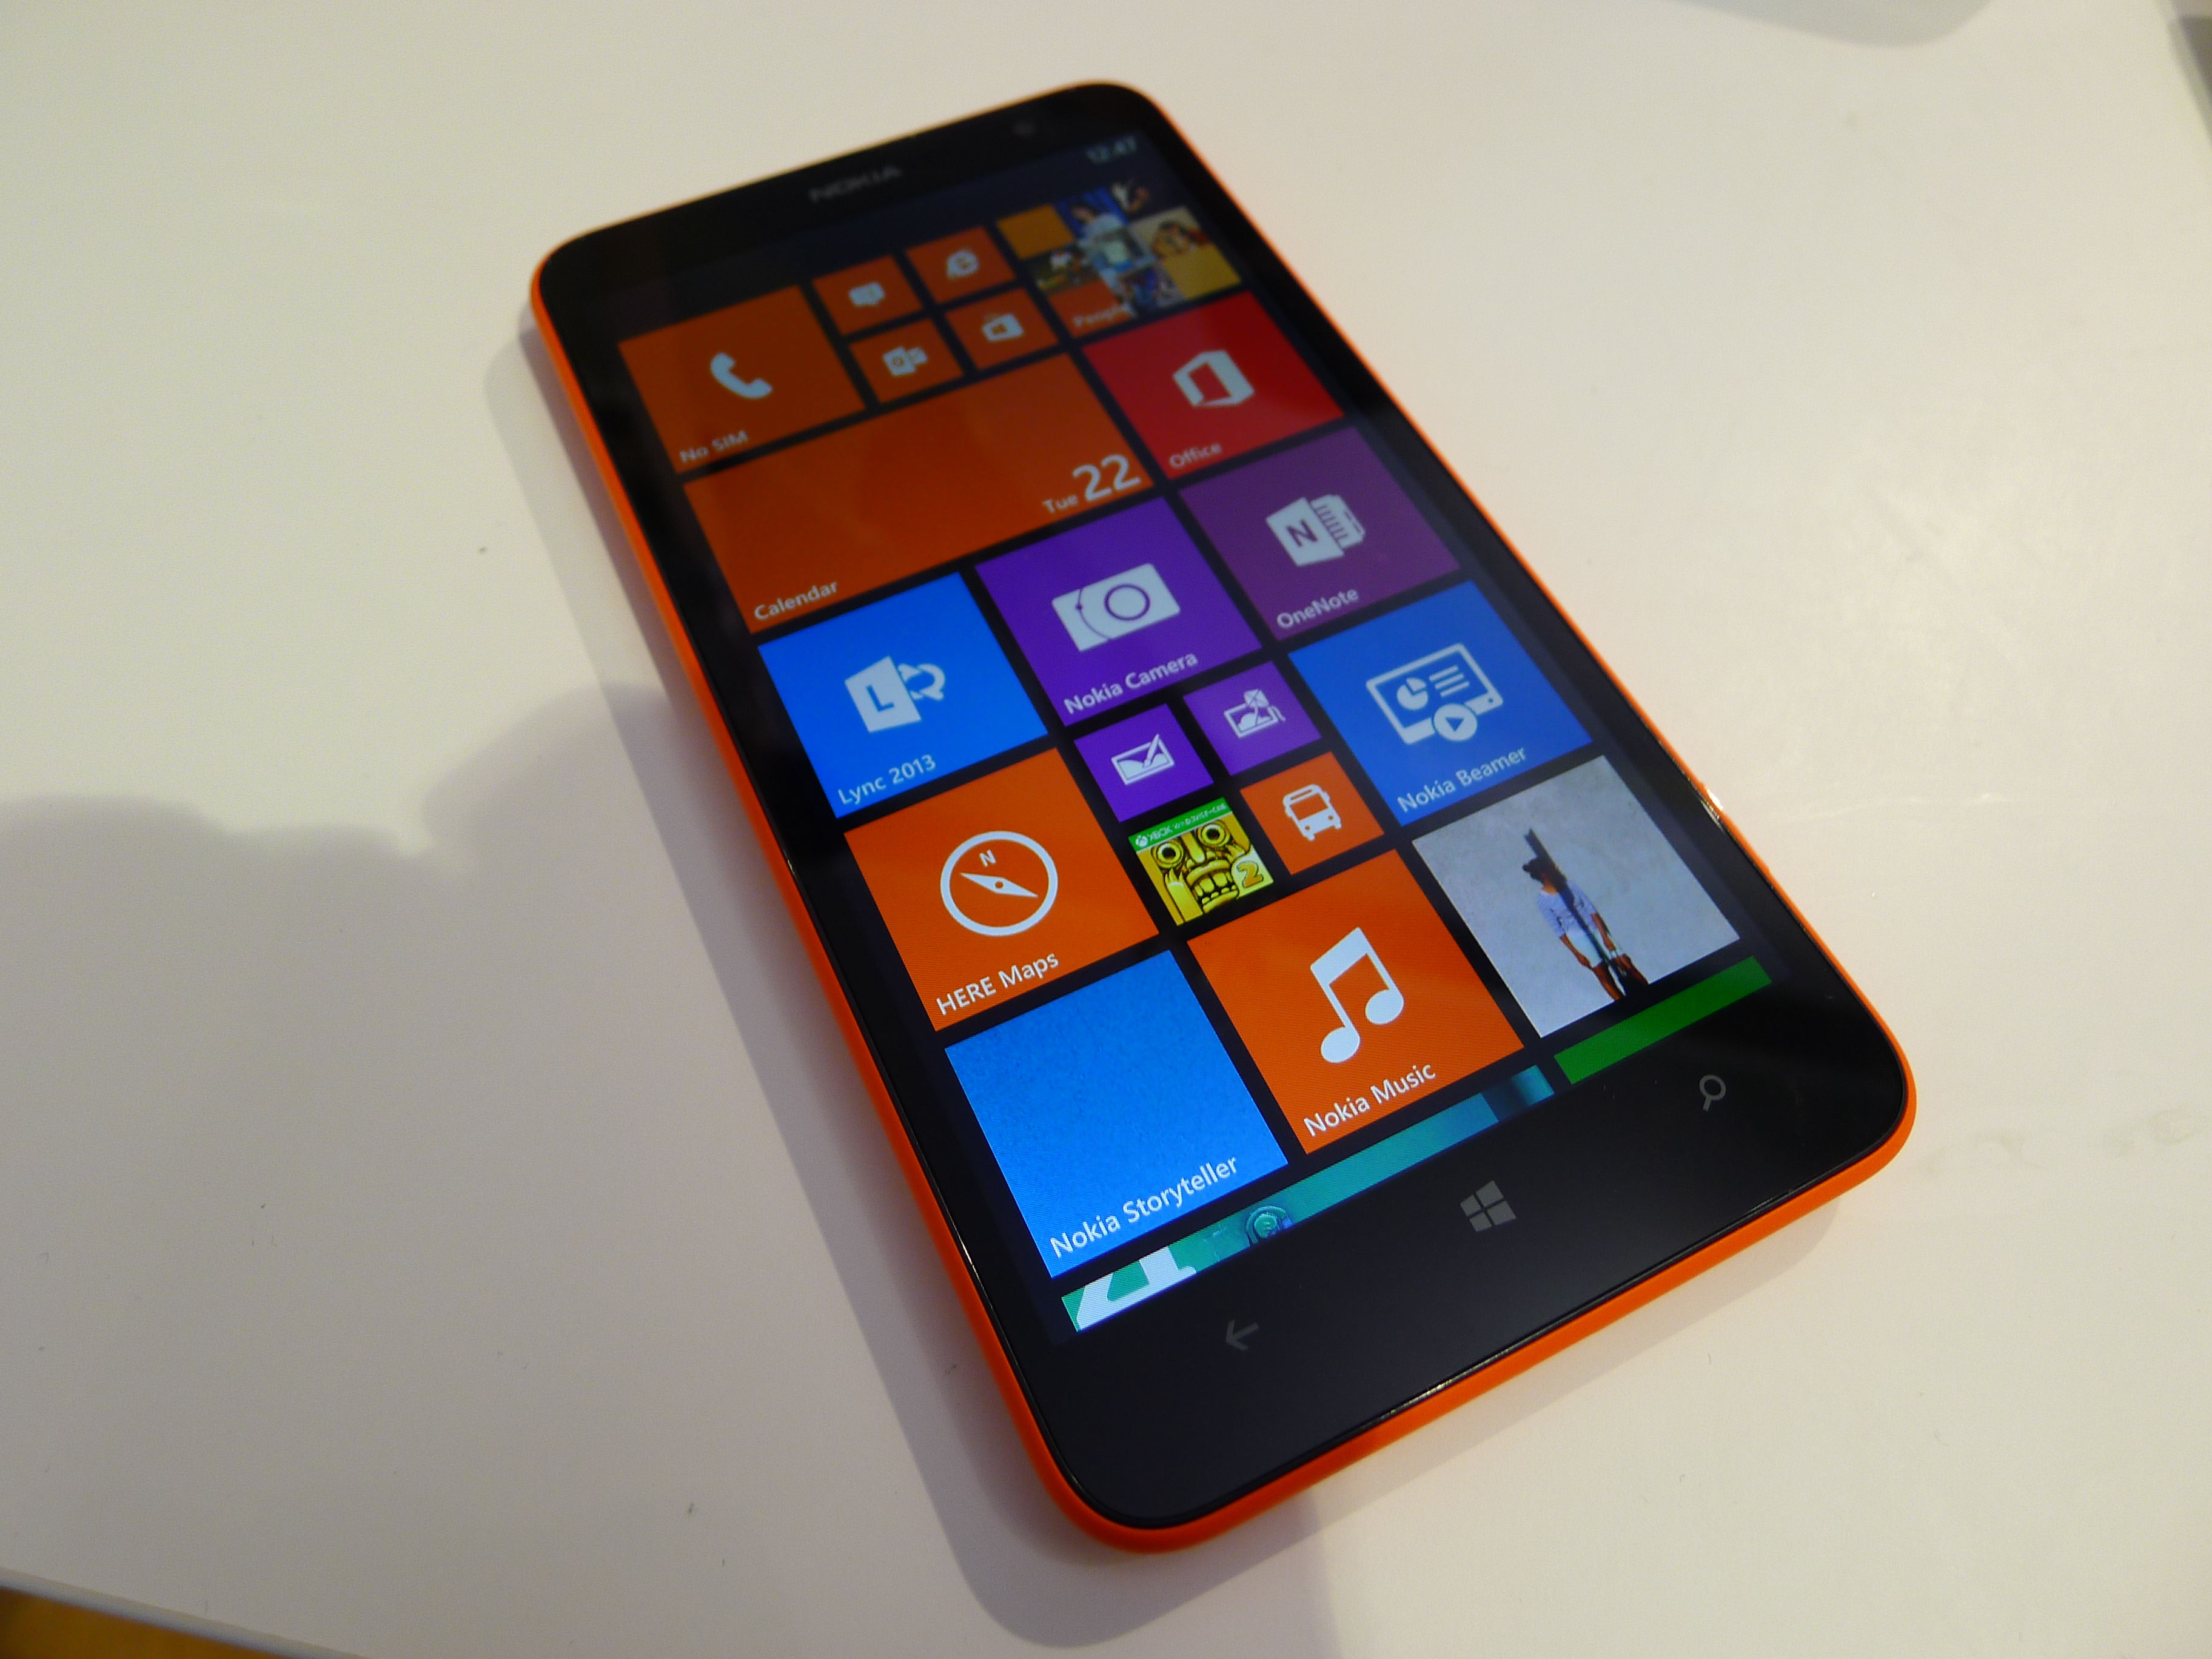 P1040484 Nokia Lumia 1320 hands on: How does this 6, 720p smartphone stack up against the Lumia 1520?